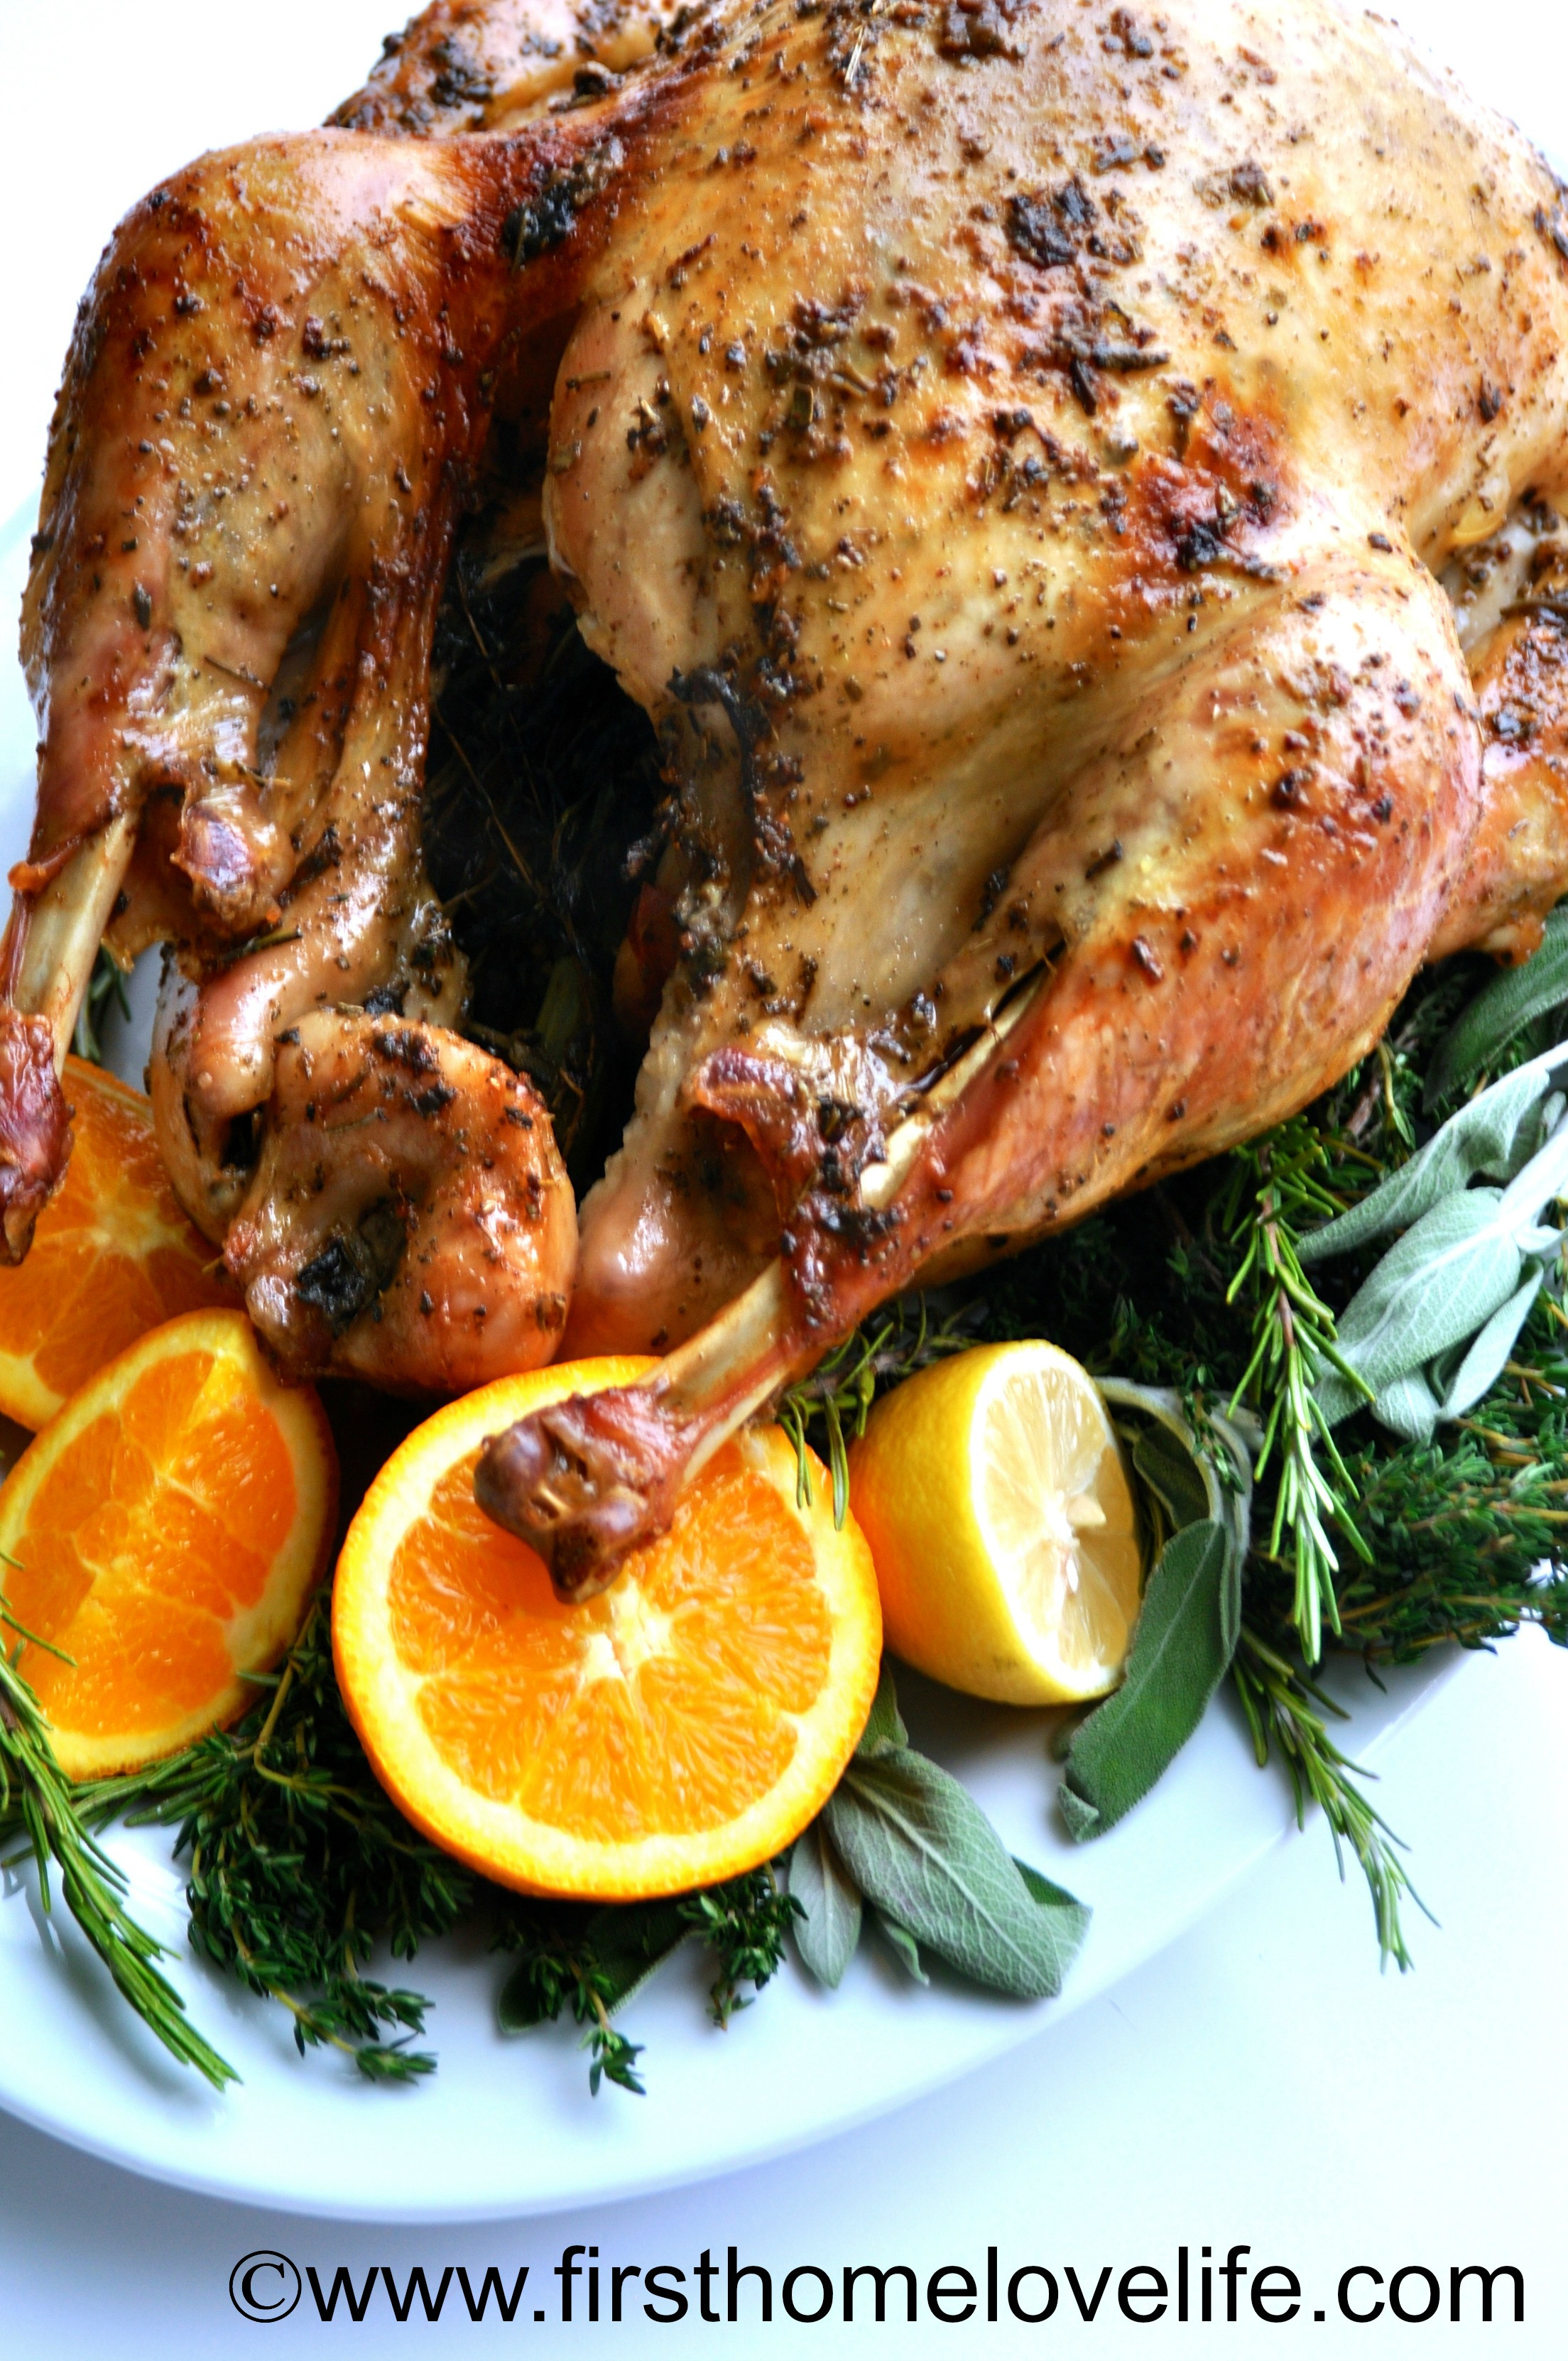 The Best Thanksgiving Turkey  The Perfect Thanksgiving Turkey First Home Love Life